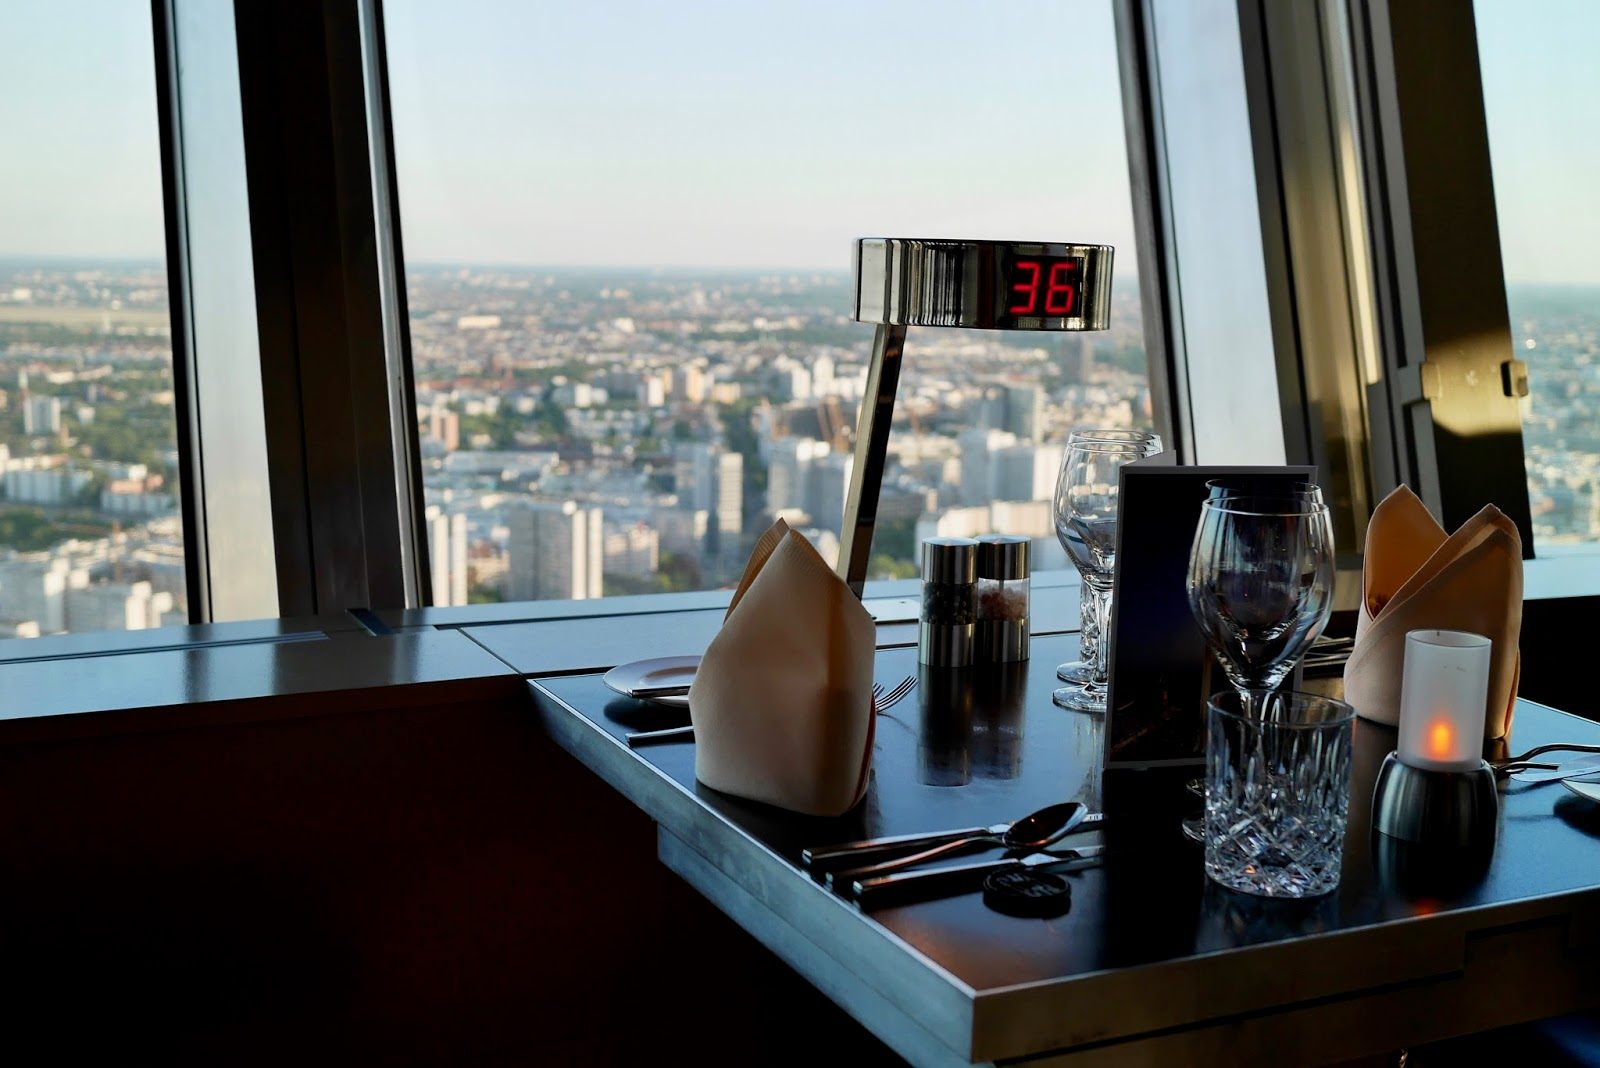 having dinner in the 360 deg revolving restaurant in berlin, looking over the city at nightfall by www.CalMcTravels.com. Cal McTravels